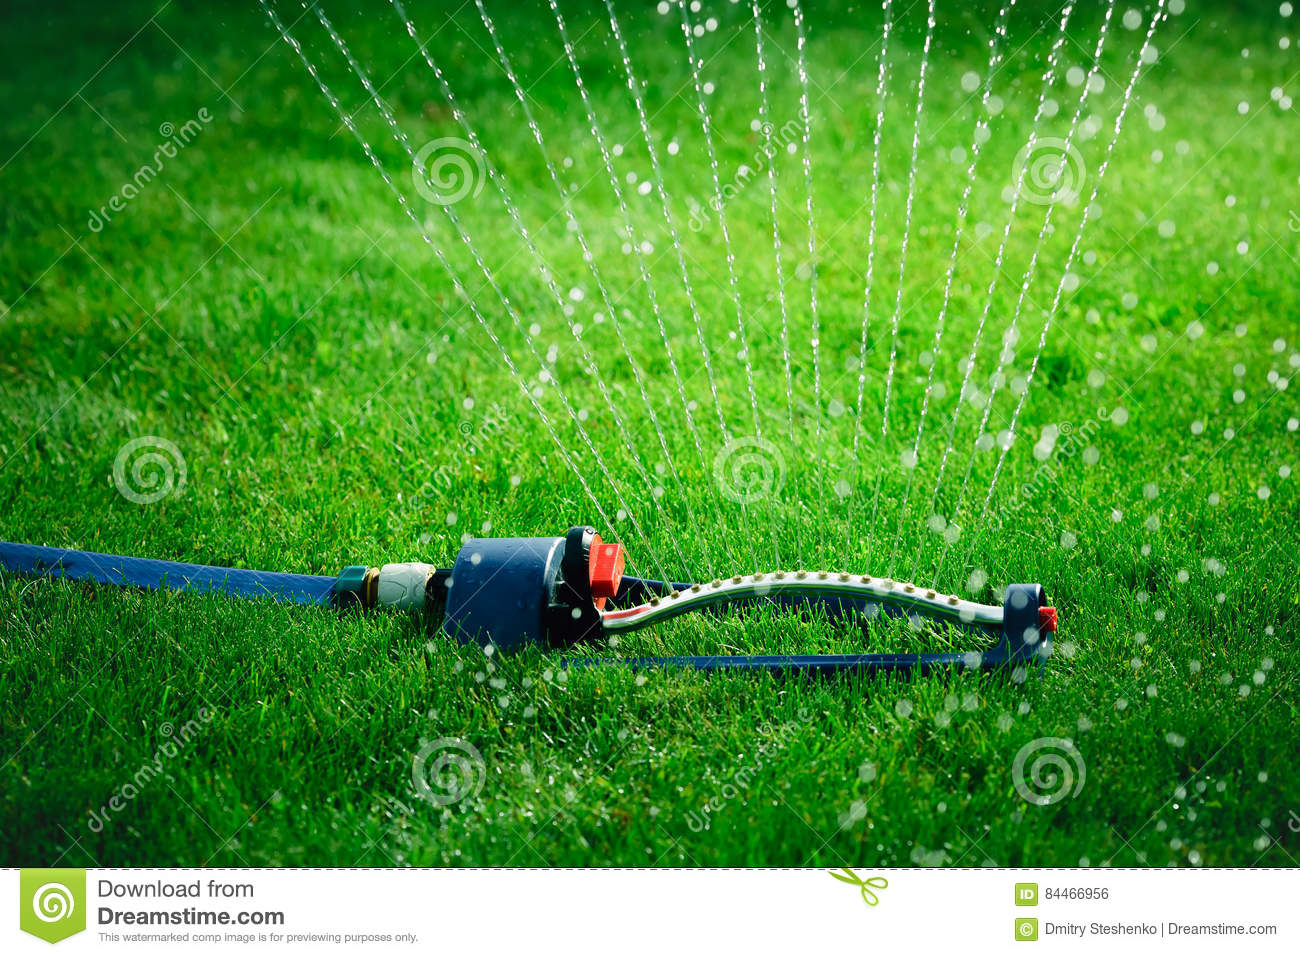 Lawn Sprinkler Spaying Water Over Green Grass Stock Photo